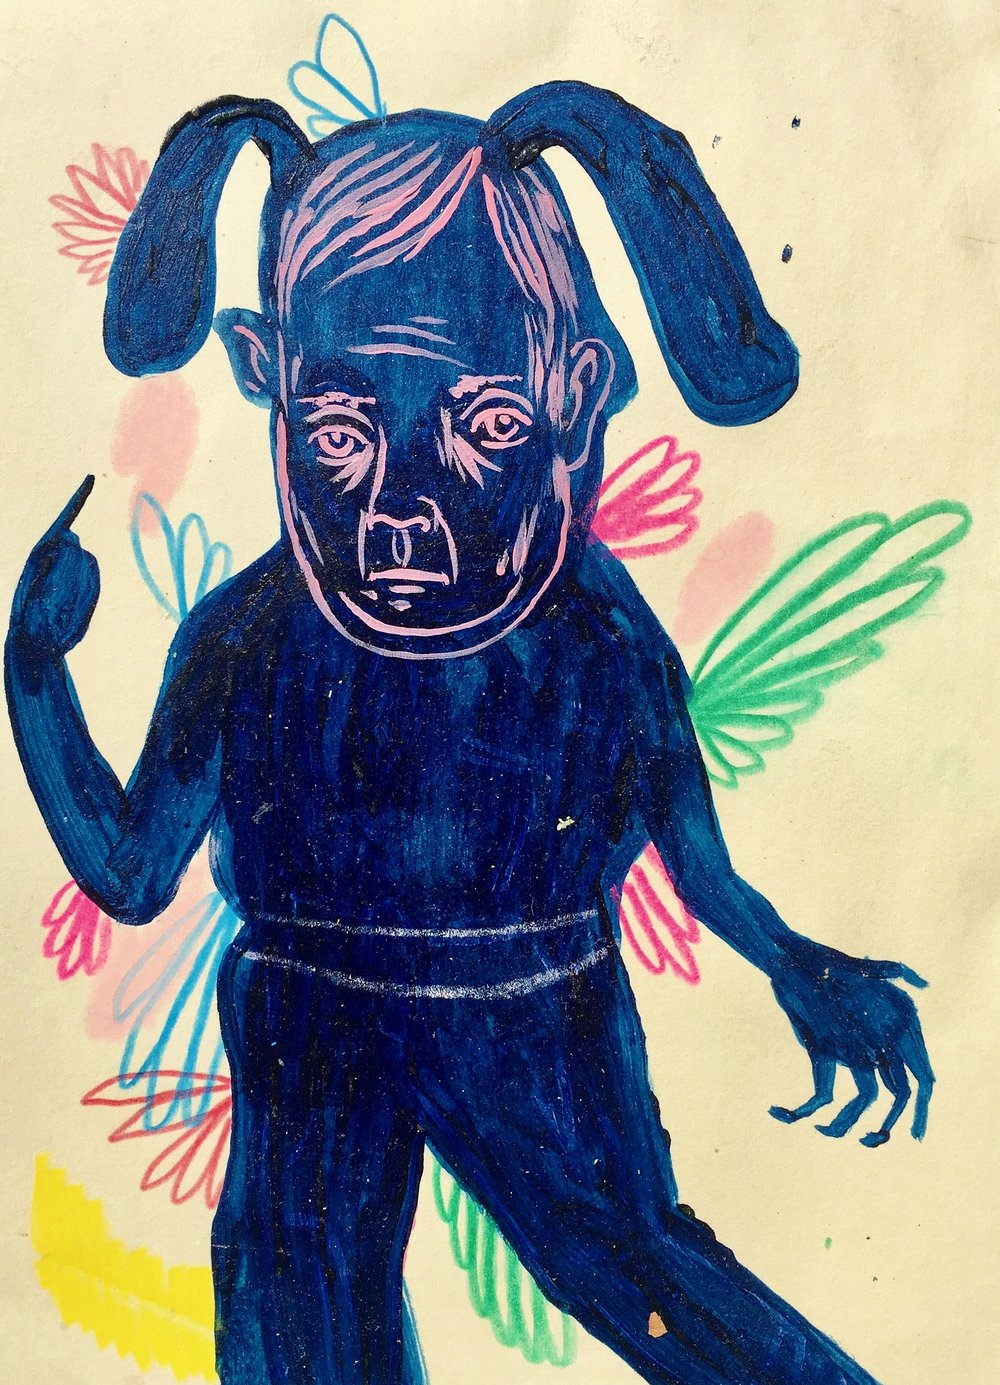 Untitled,   (Blue boy with big ears)   Mixed media on paper  2008  5 x 7 In  SOLD